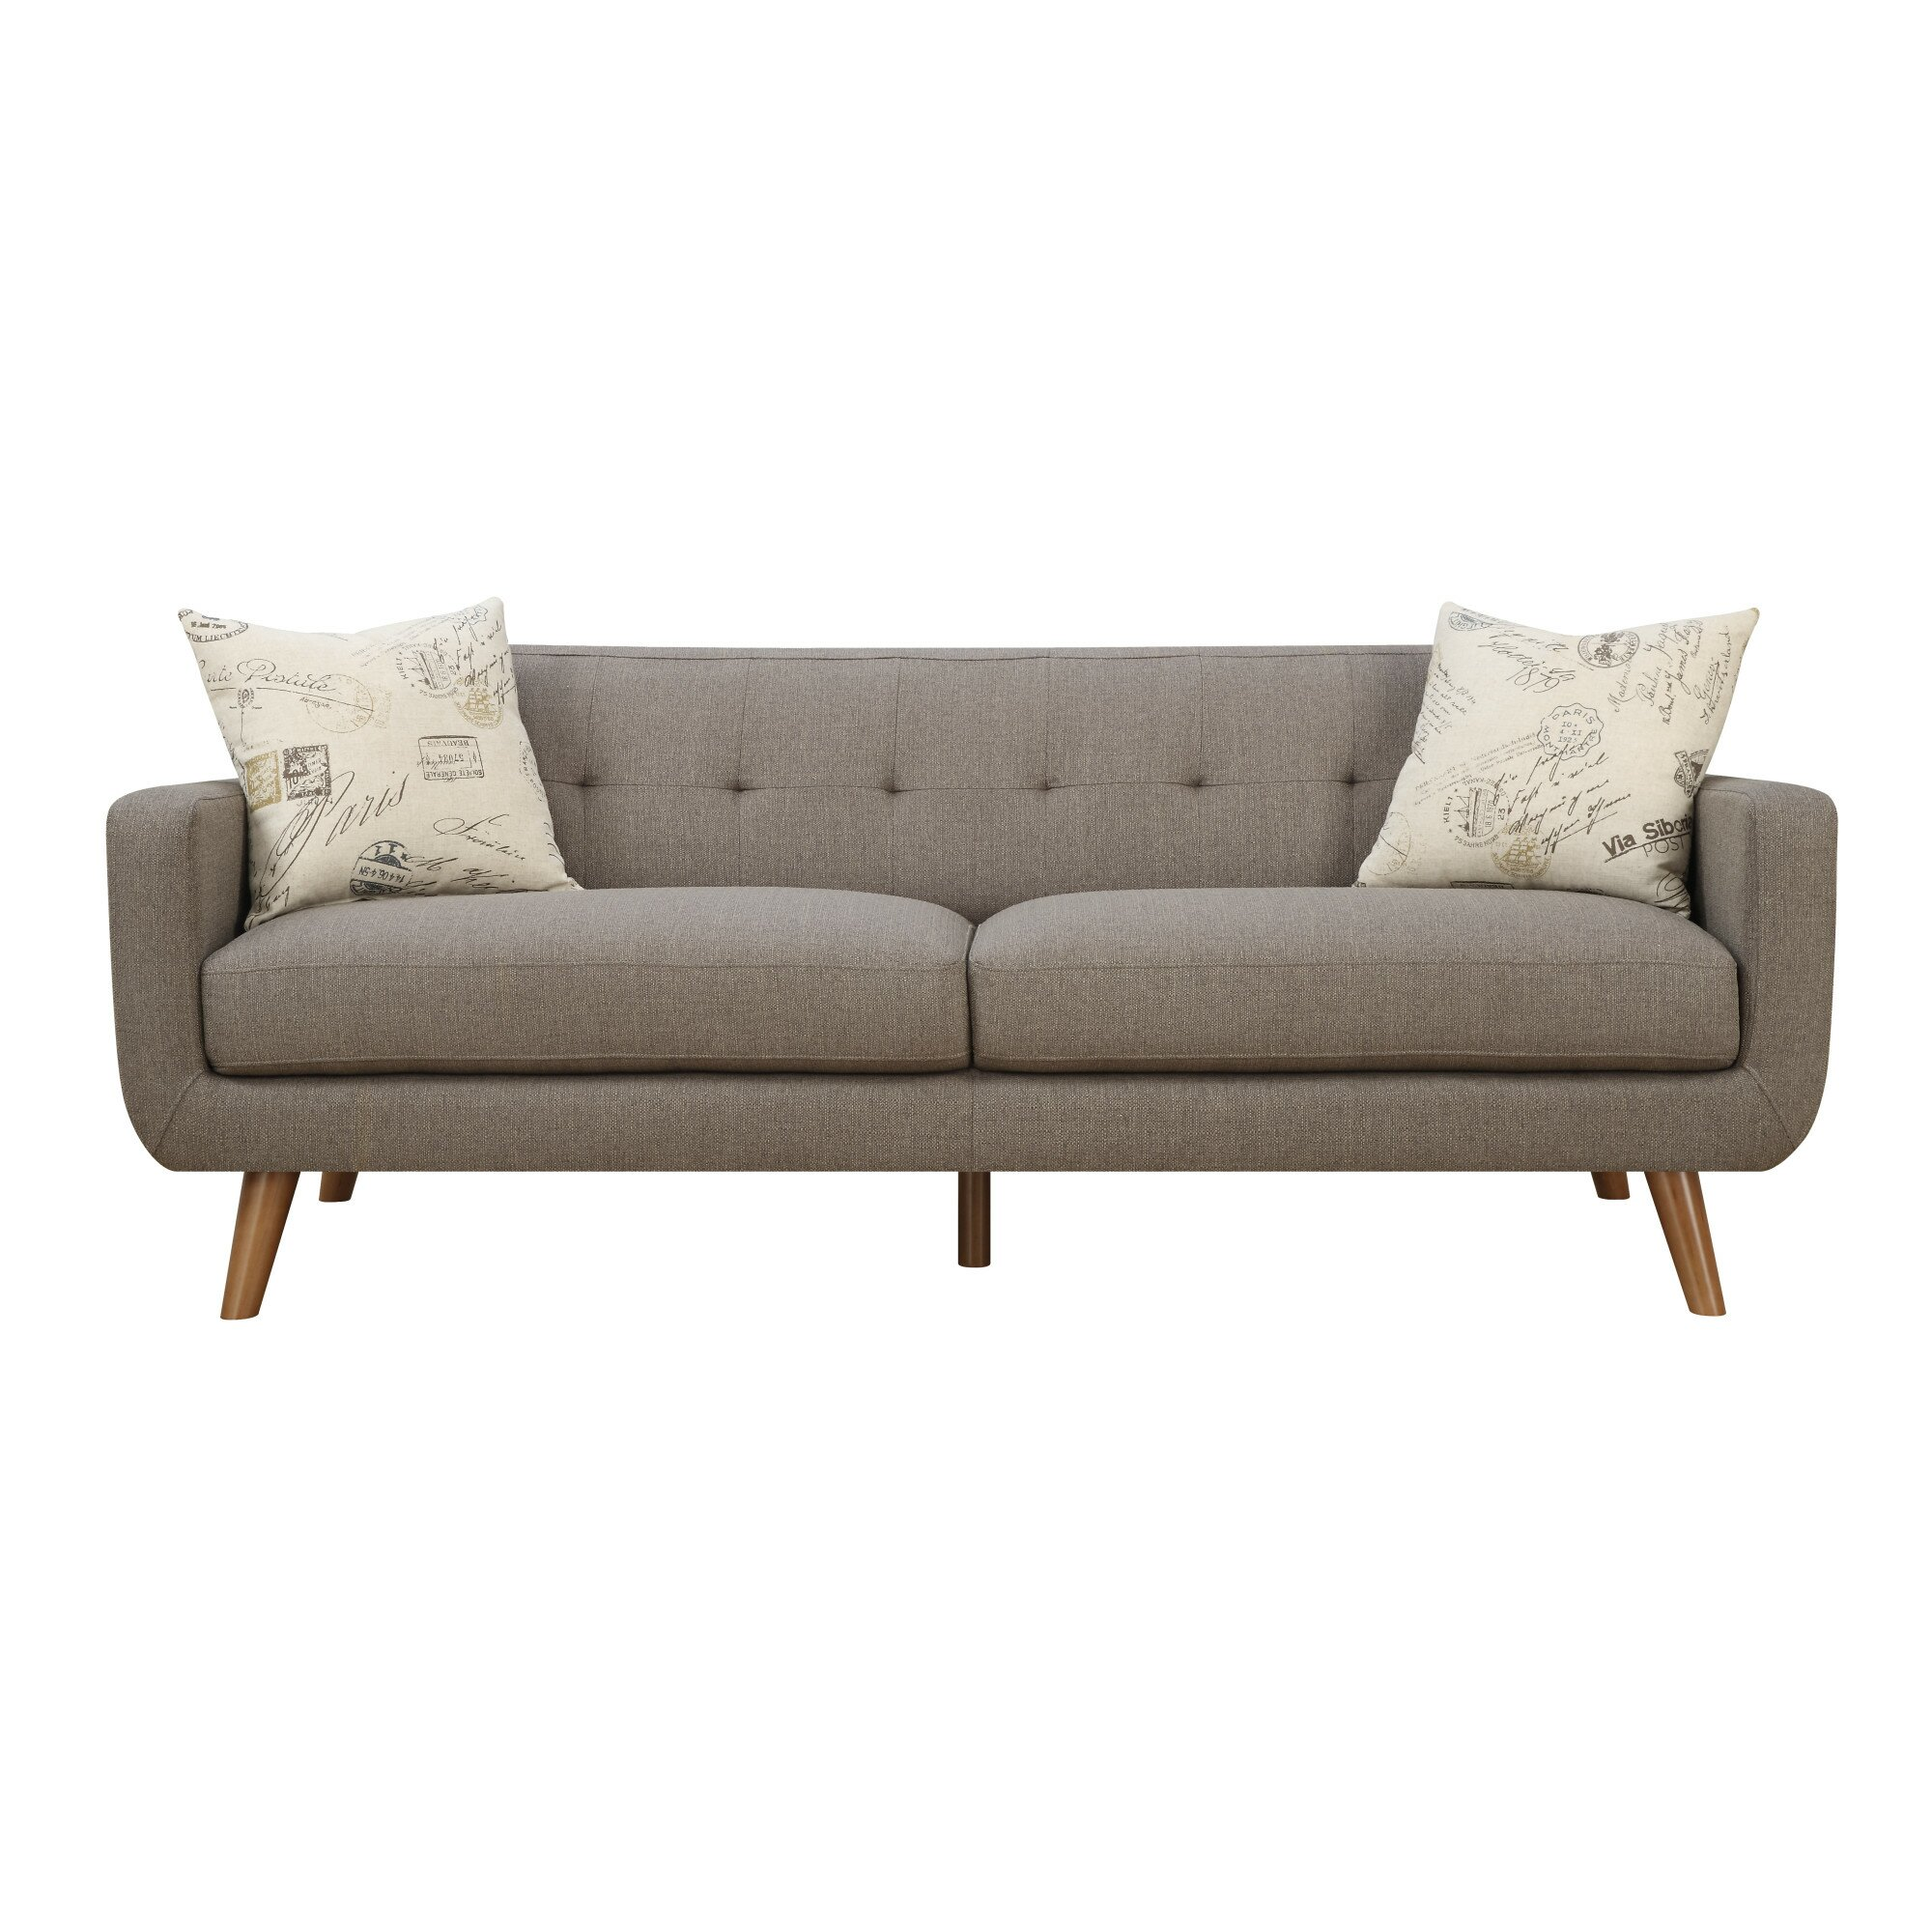 Latitude run mid century modern sofa with accent pillows for Mid century modern sofas